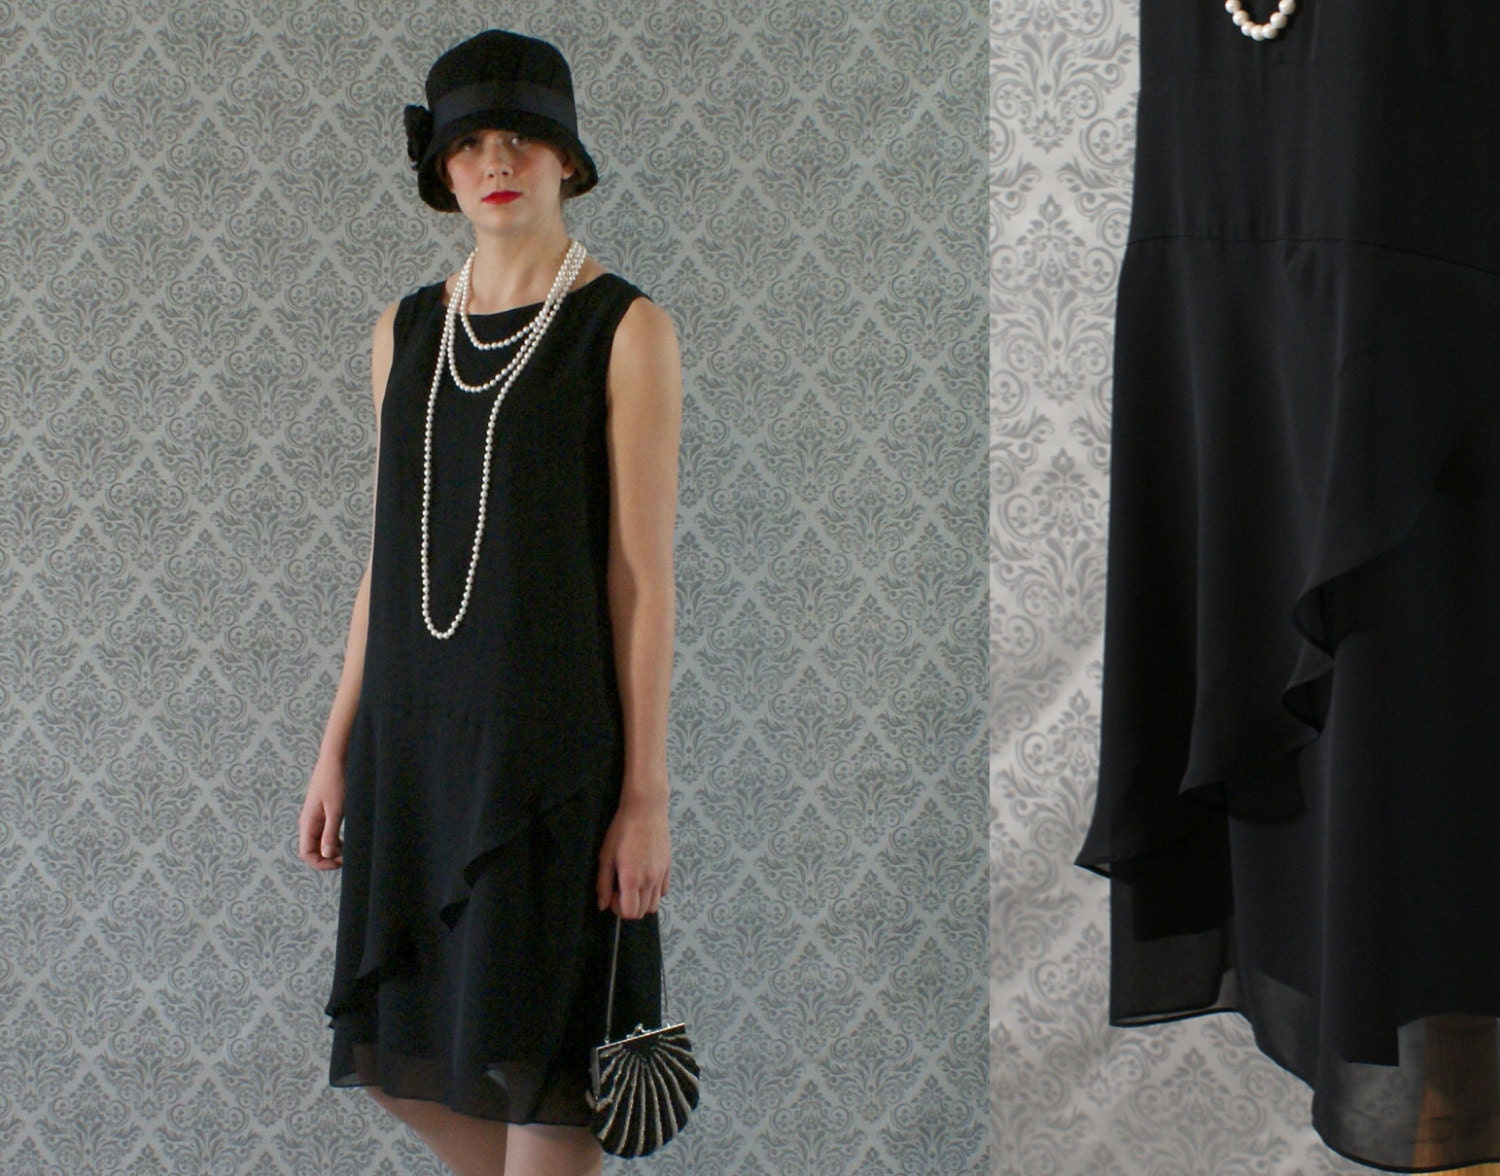 Elegant black flapper dress with ruffled skirt detail Great